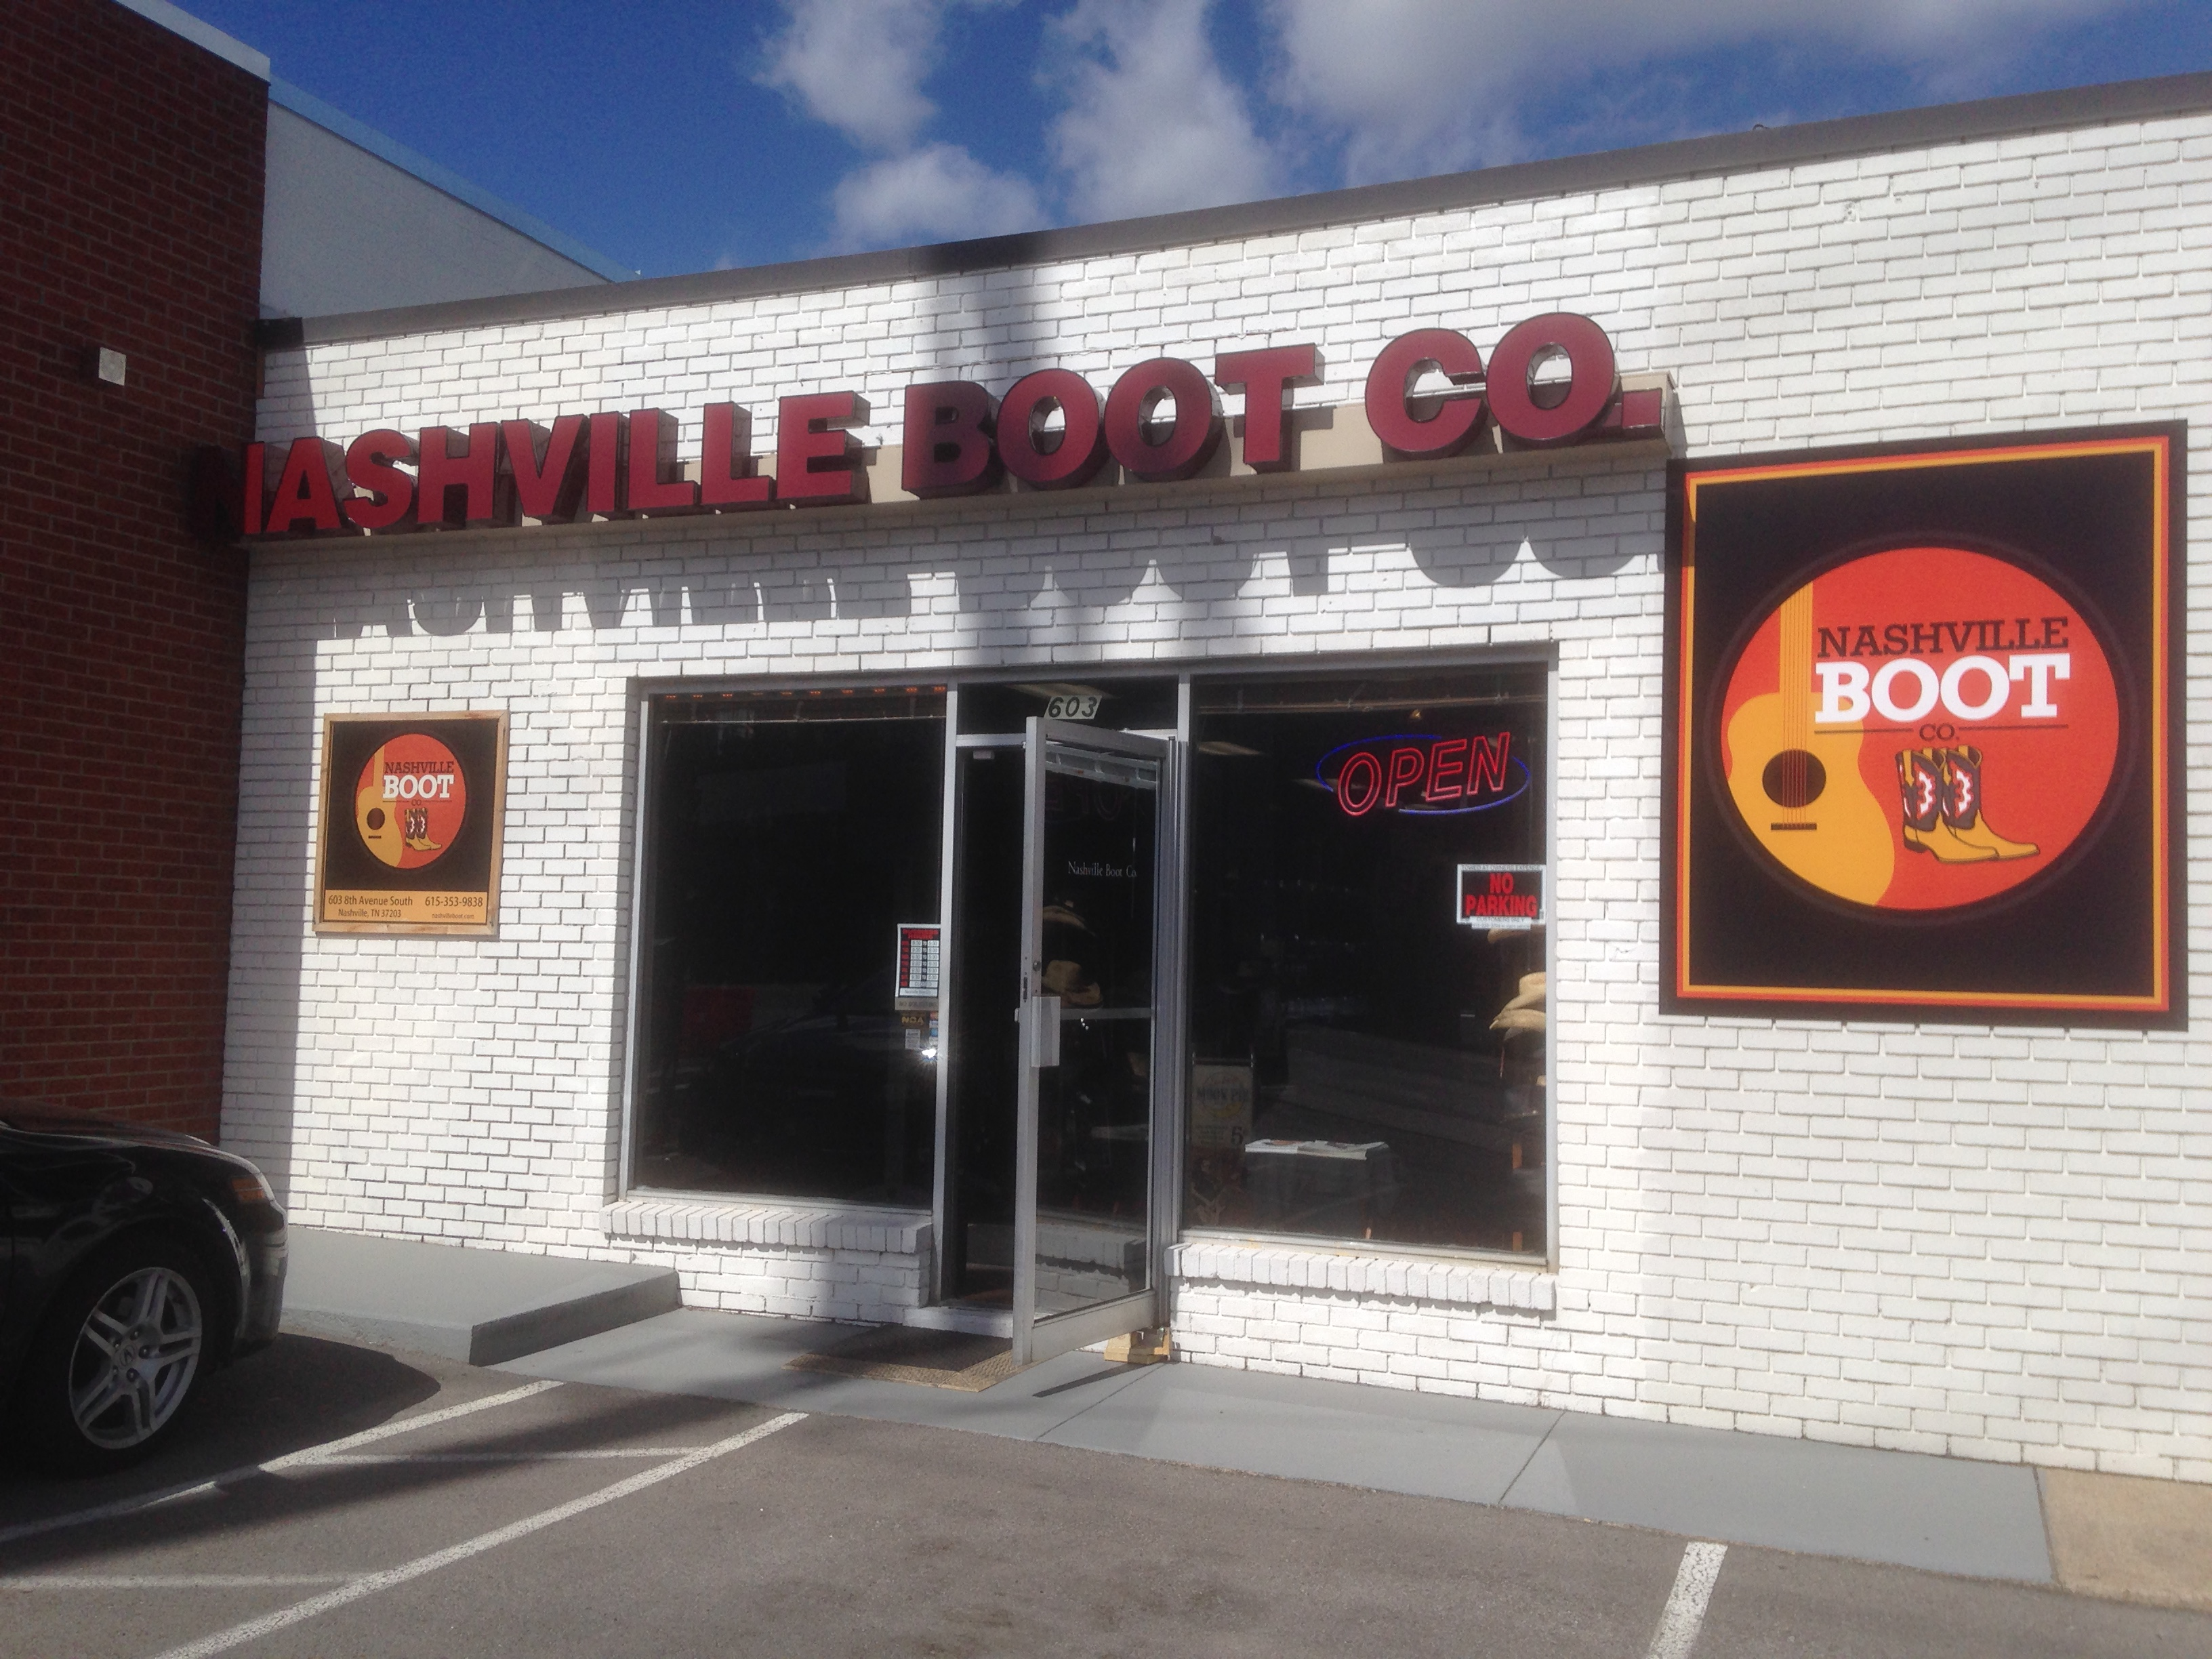 Nashville Boot Co. Store